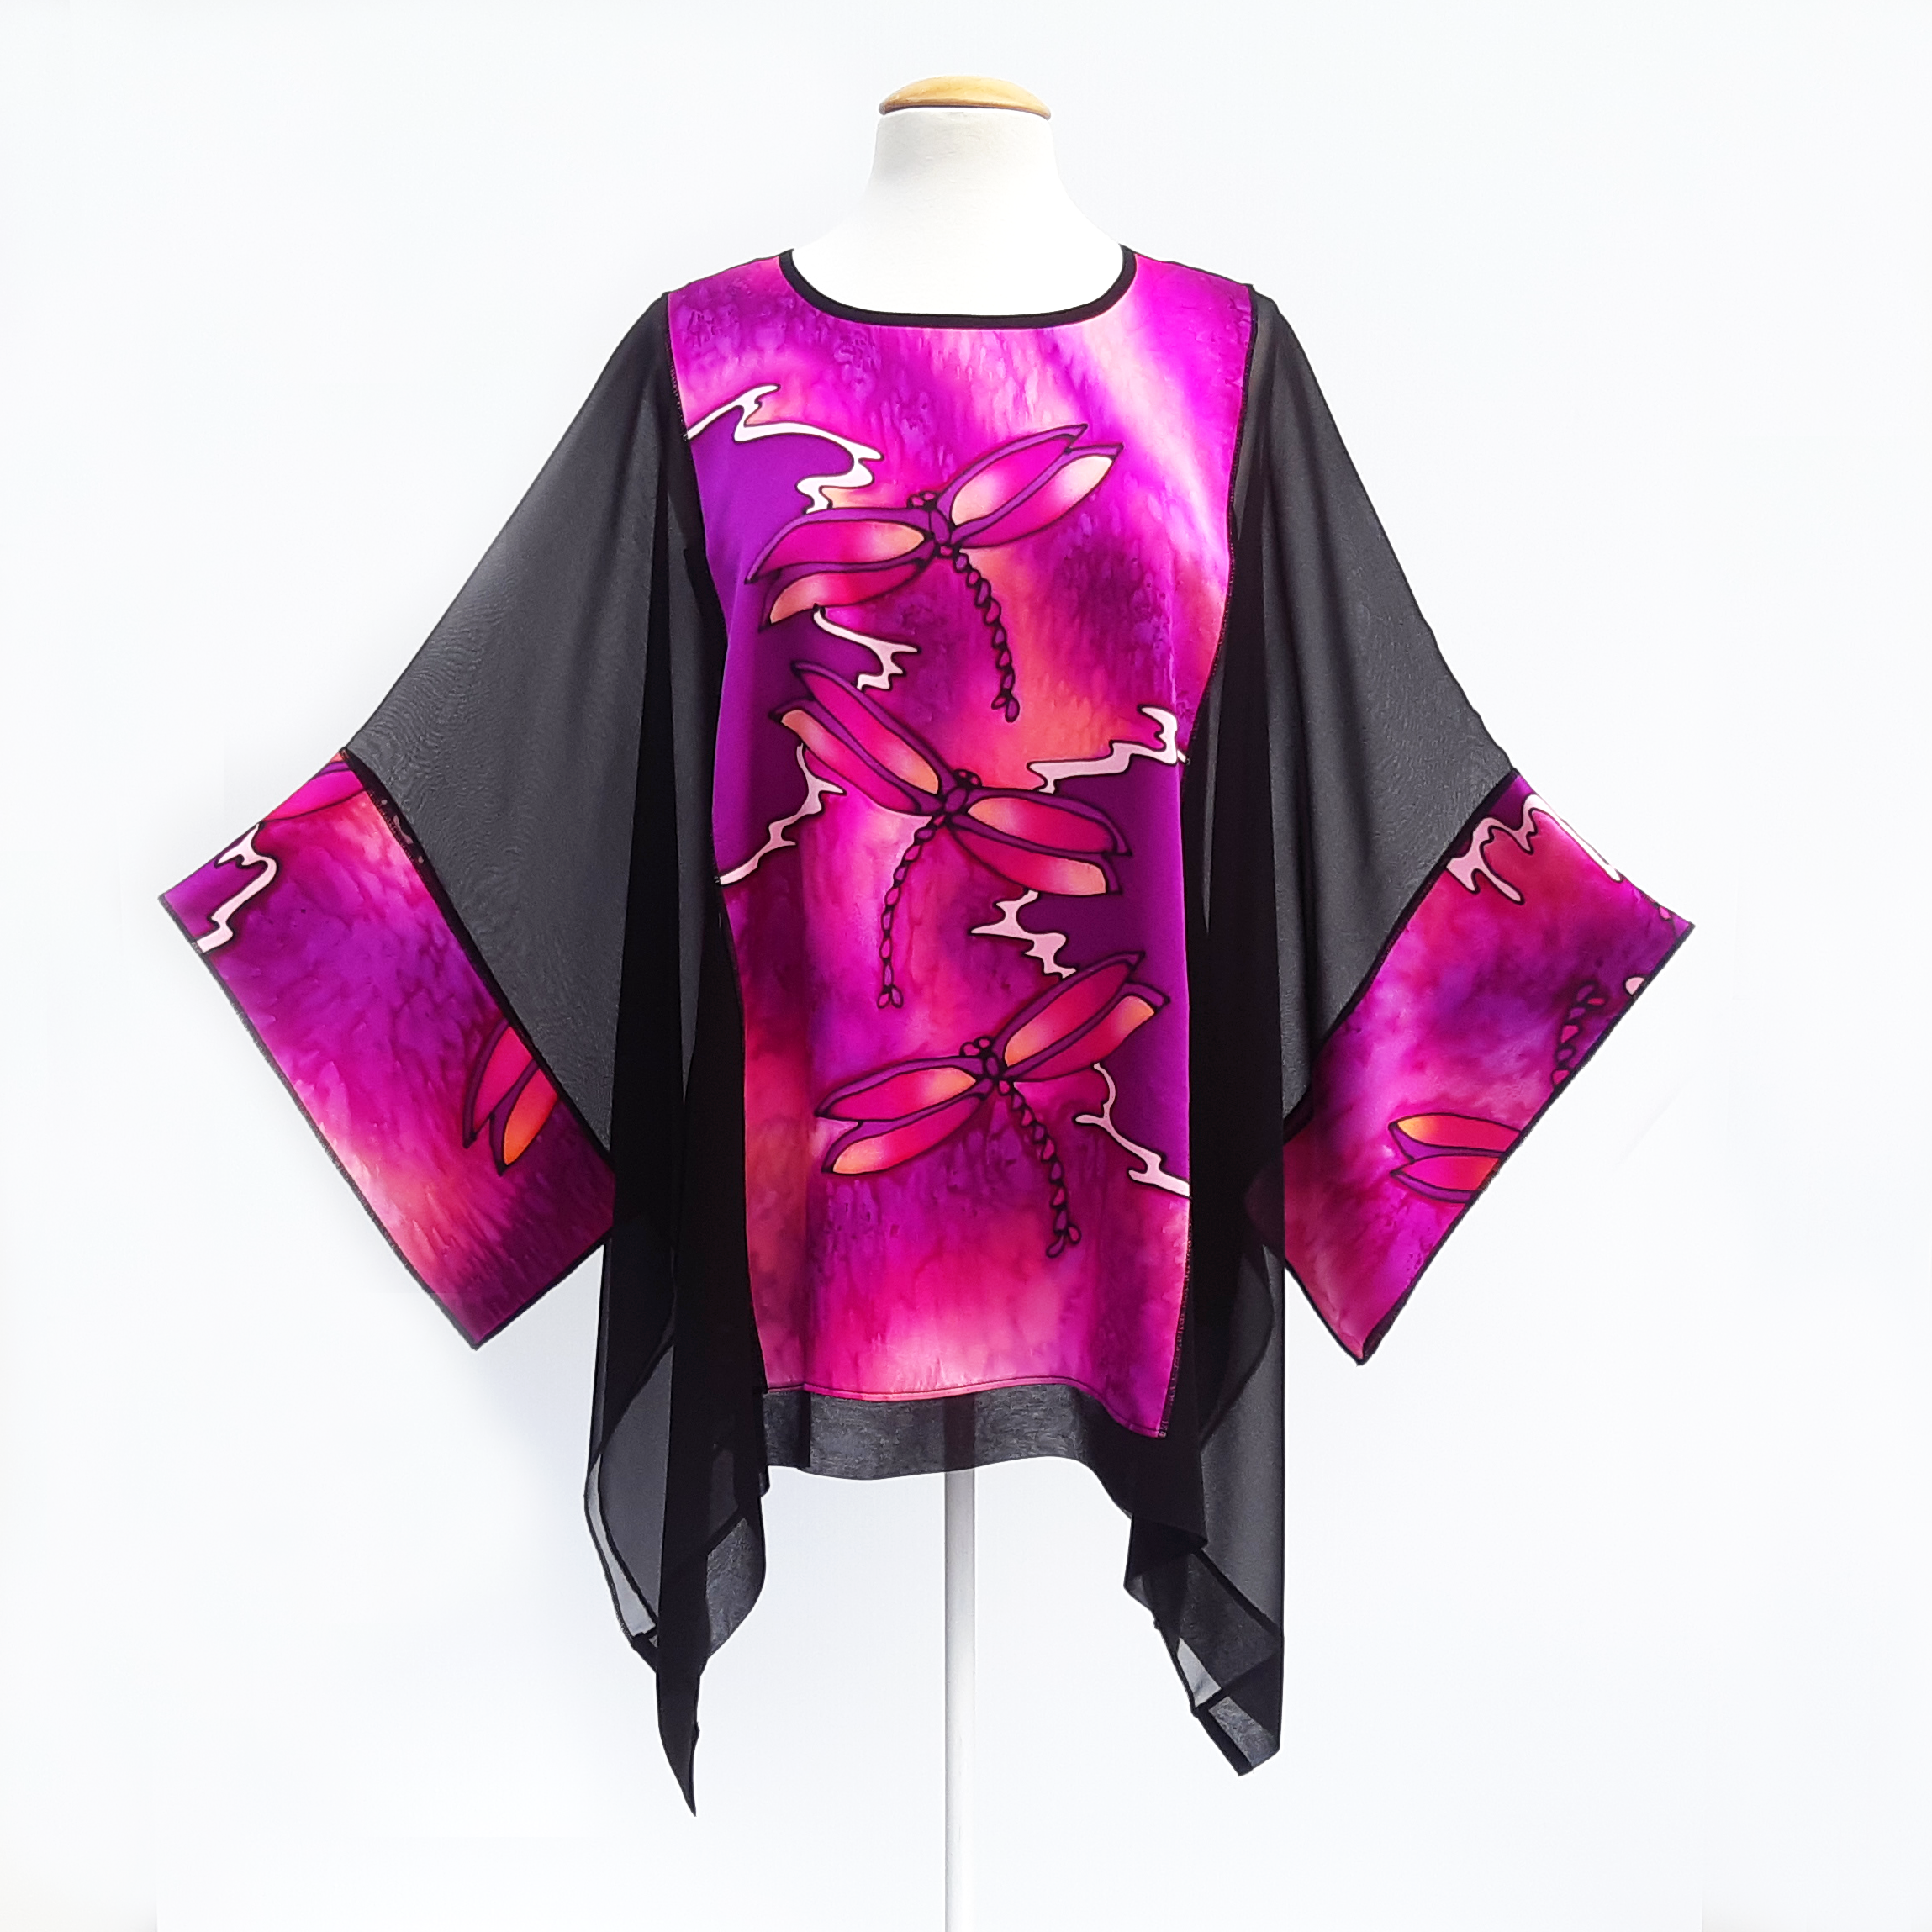 black silk long caftan top for women hand painted pink dragonflies made by Lynne Kiel